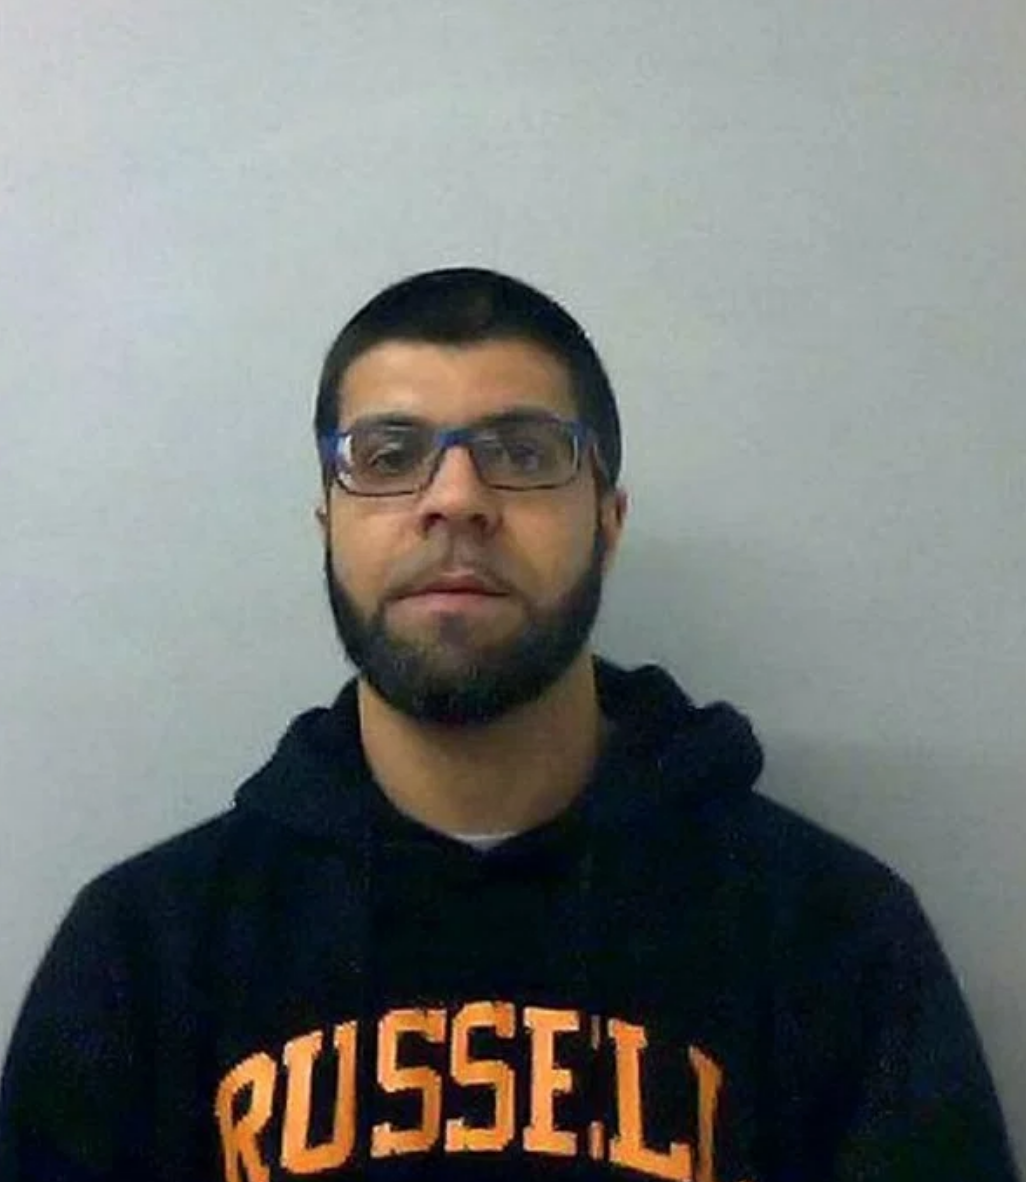 Khalid Hussain was convicted of one rape and one indecent assault. Credit: SWNS